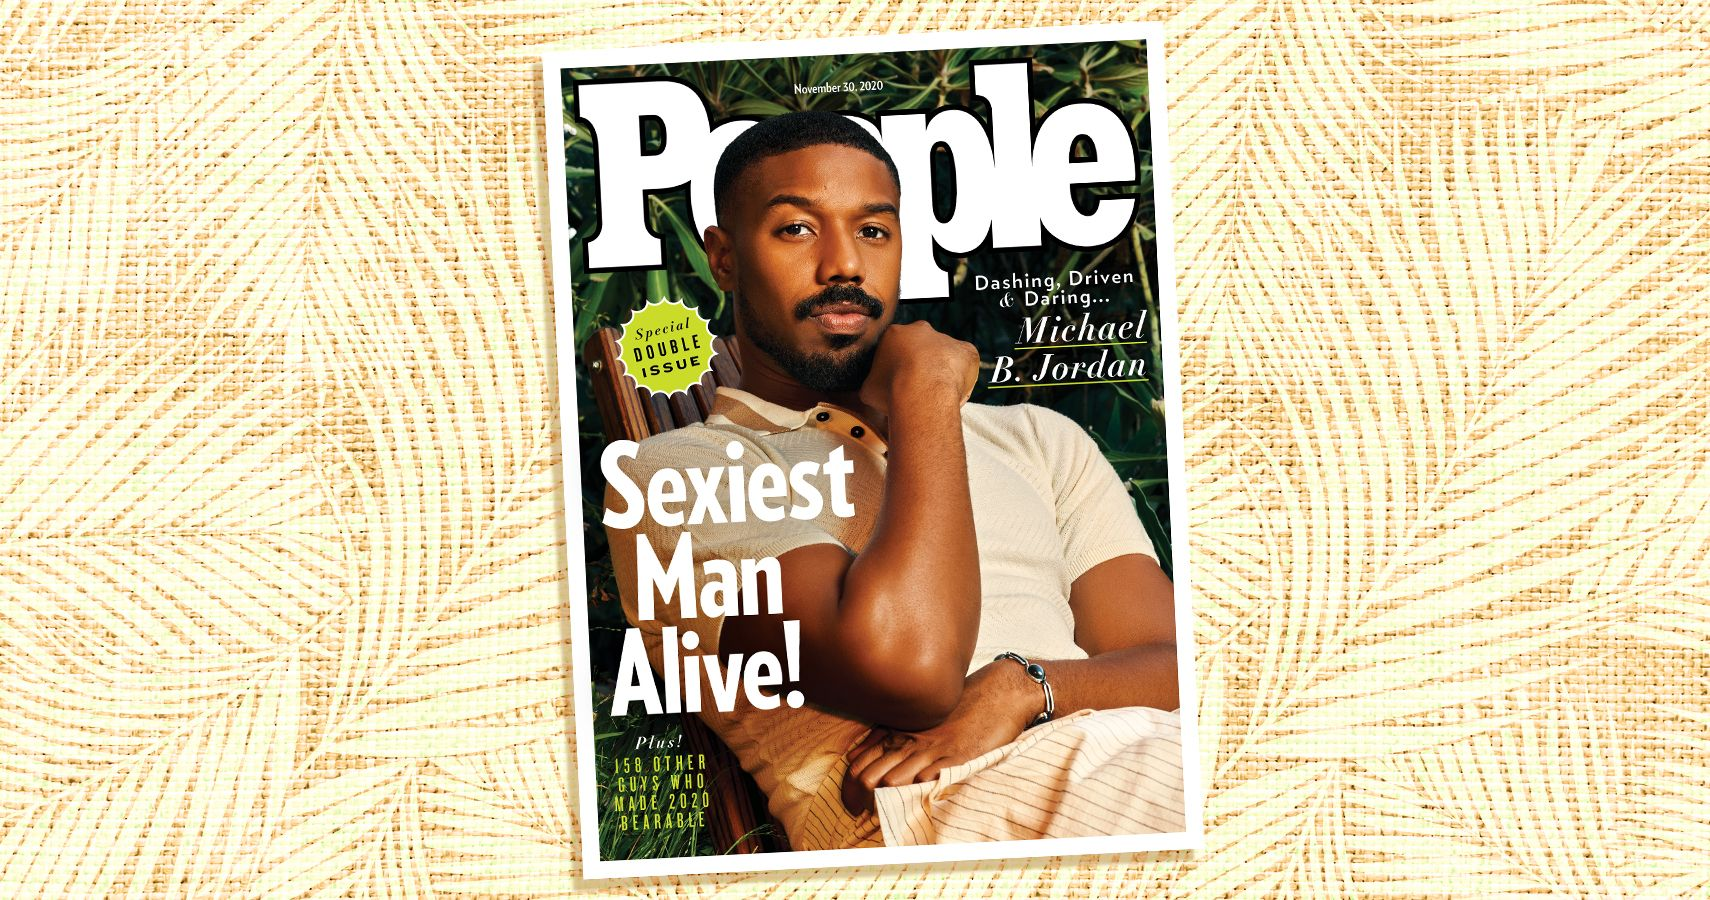 Michael B. Jordan Named PEOPLE's Sexiest Man Alive! | Moms.com